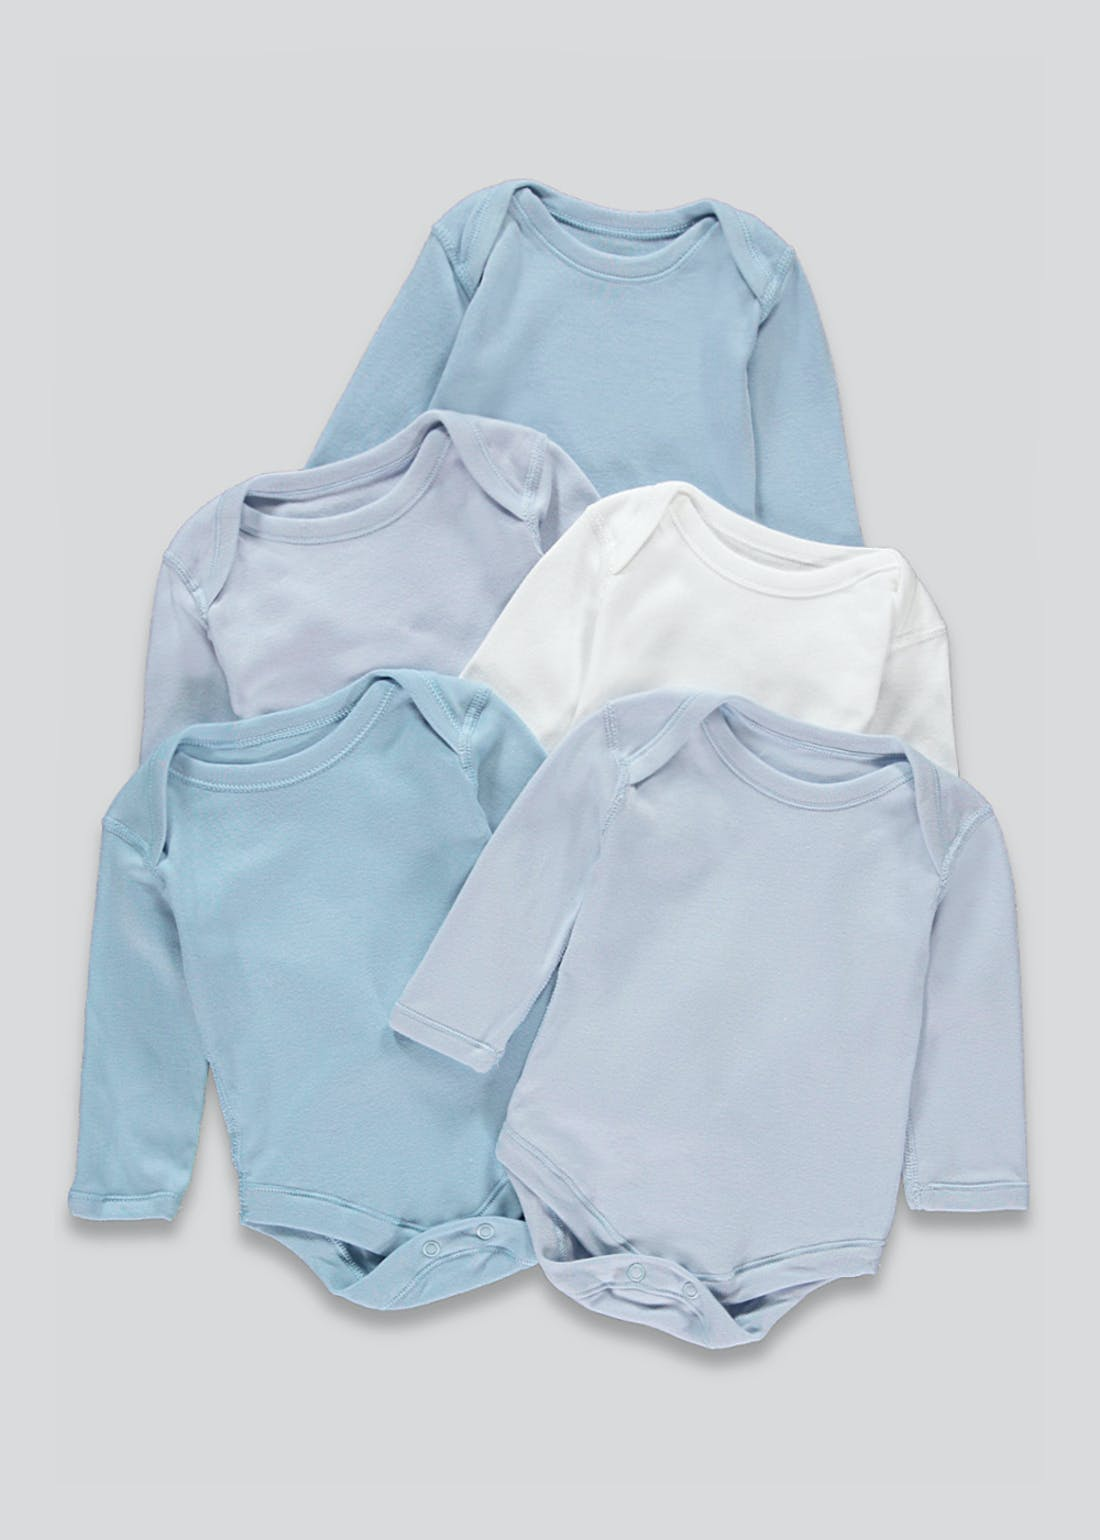 Boys 5 Pack Long Sleeve Bodysuits (Newborn-23mths)